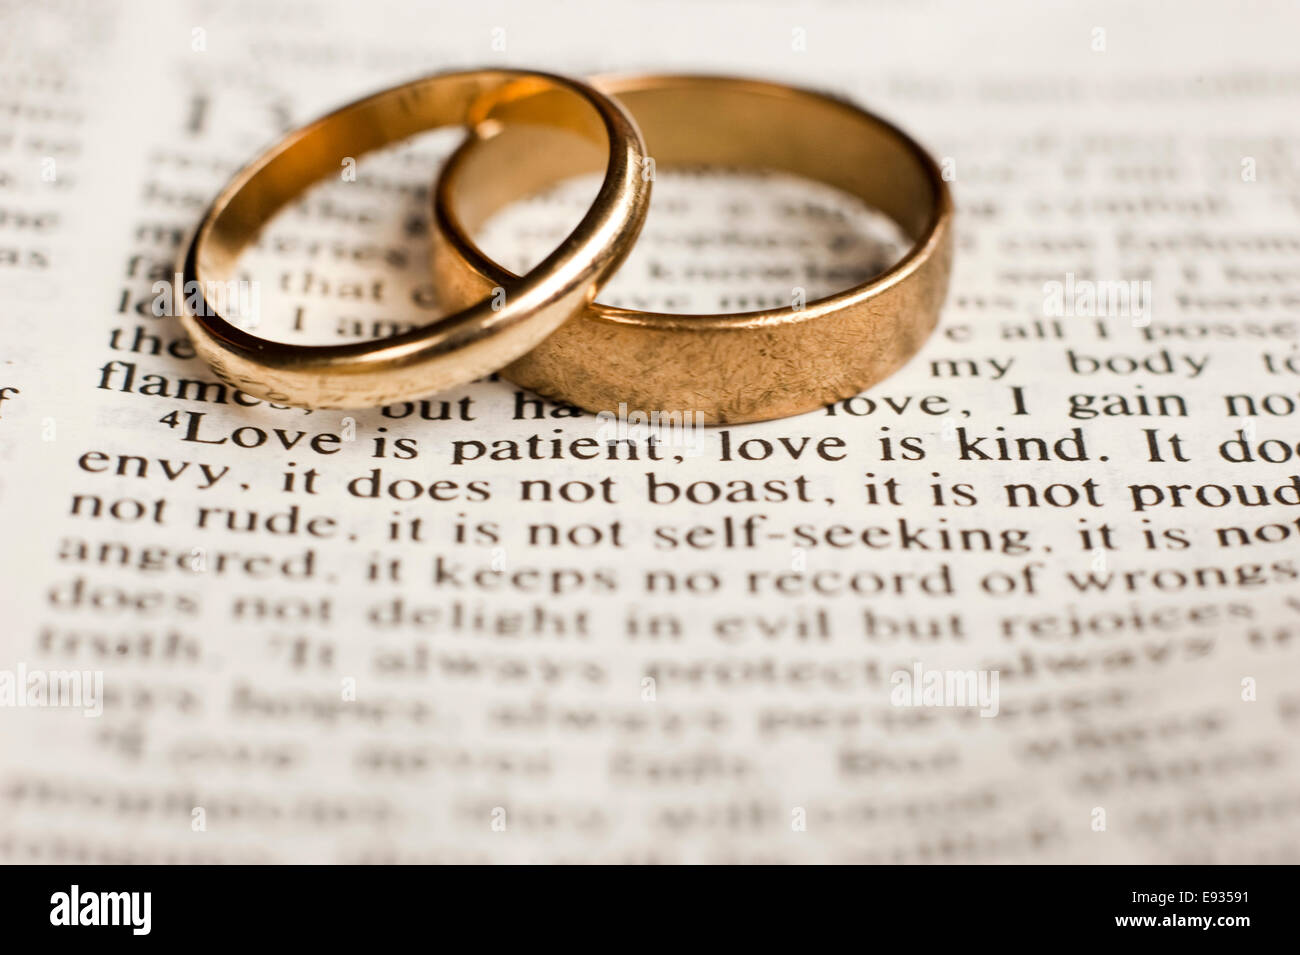 Wedding Ring Meaning Bible Wedding Rings On Bible Passage On Love Stock Photo